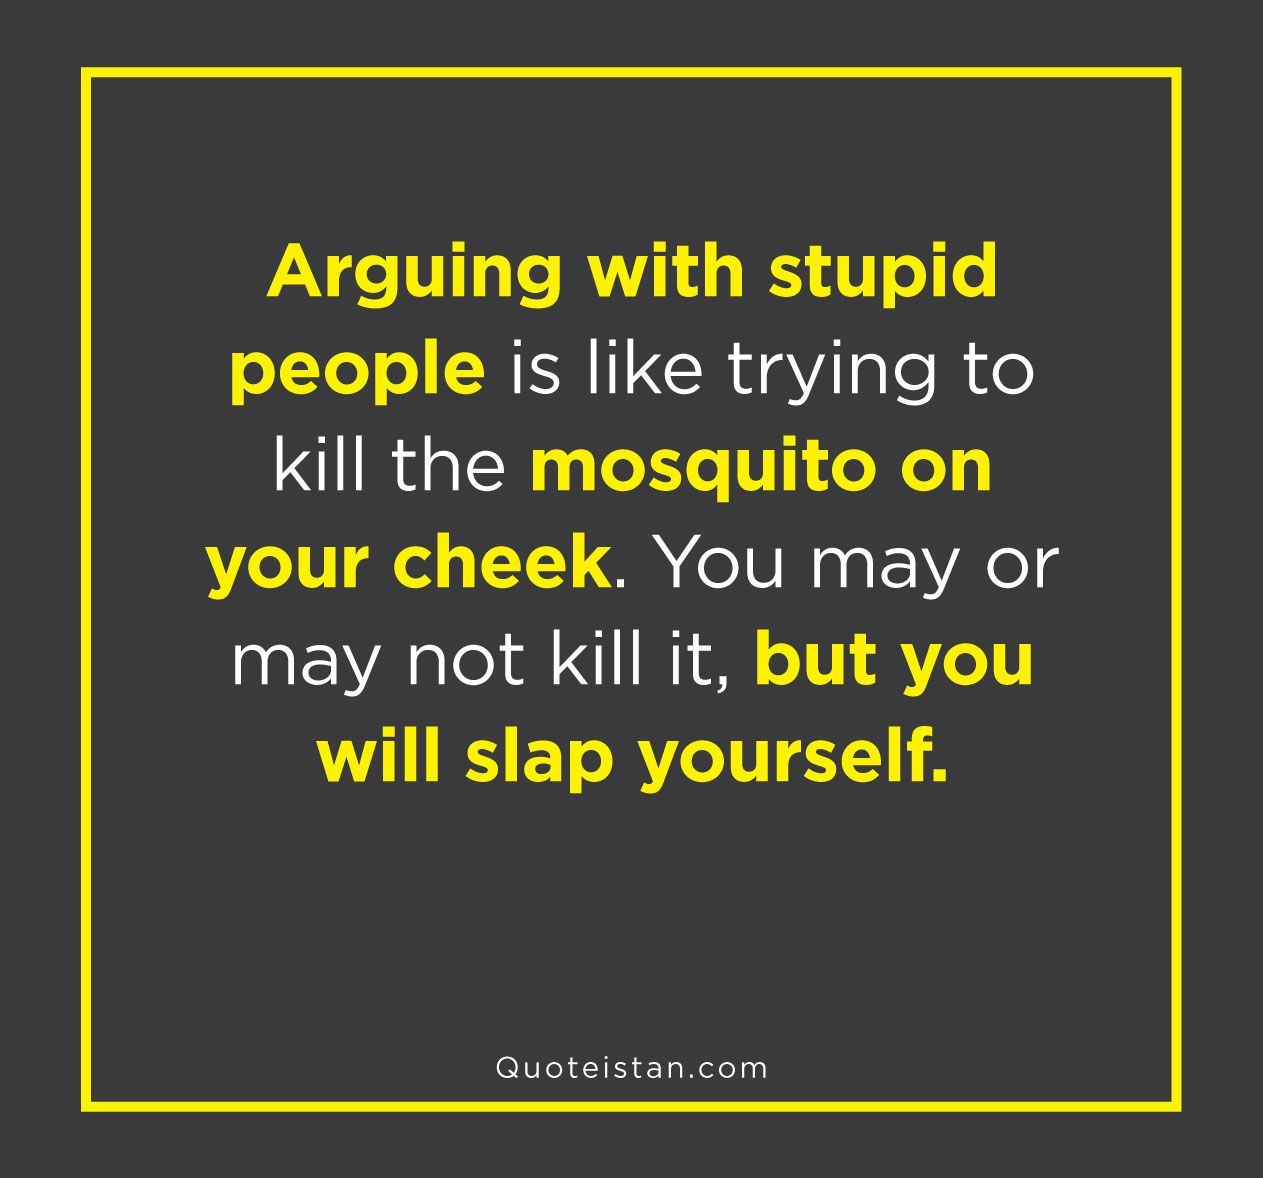 Arguing With Stupid People Is Like Trying To Kill The Mosquito On Your Cheek You May Or May Not Kill It Funny Quotes For Instagram Stupid People Funny Quotes